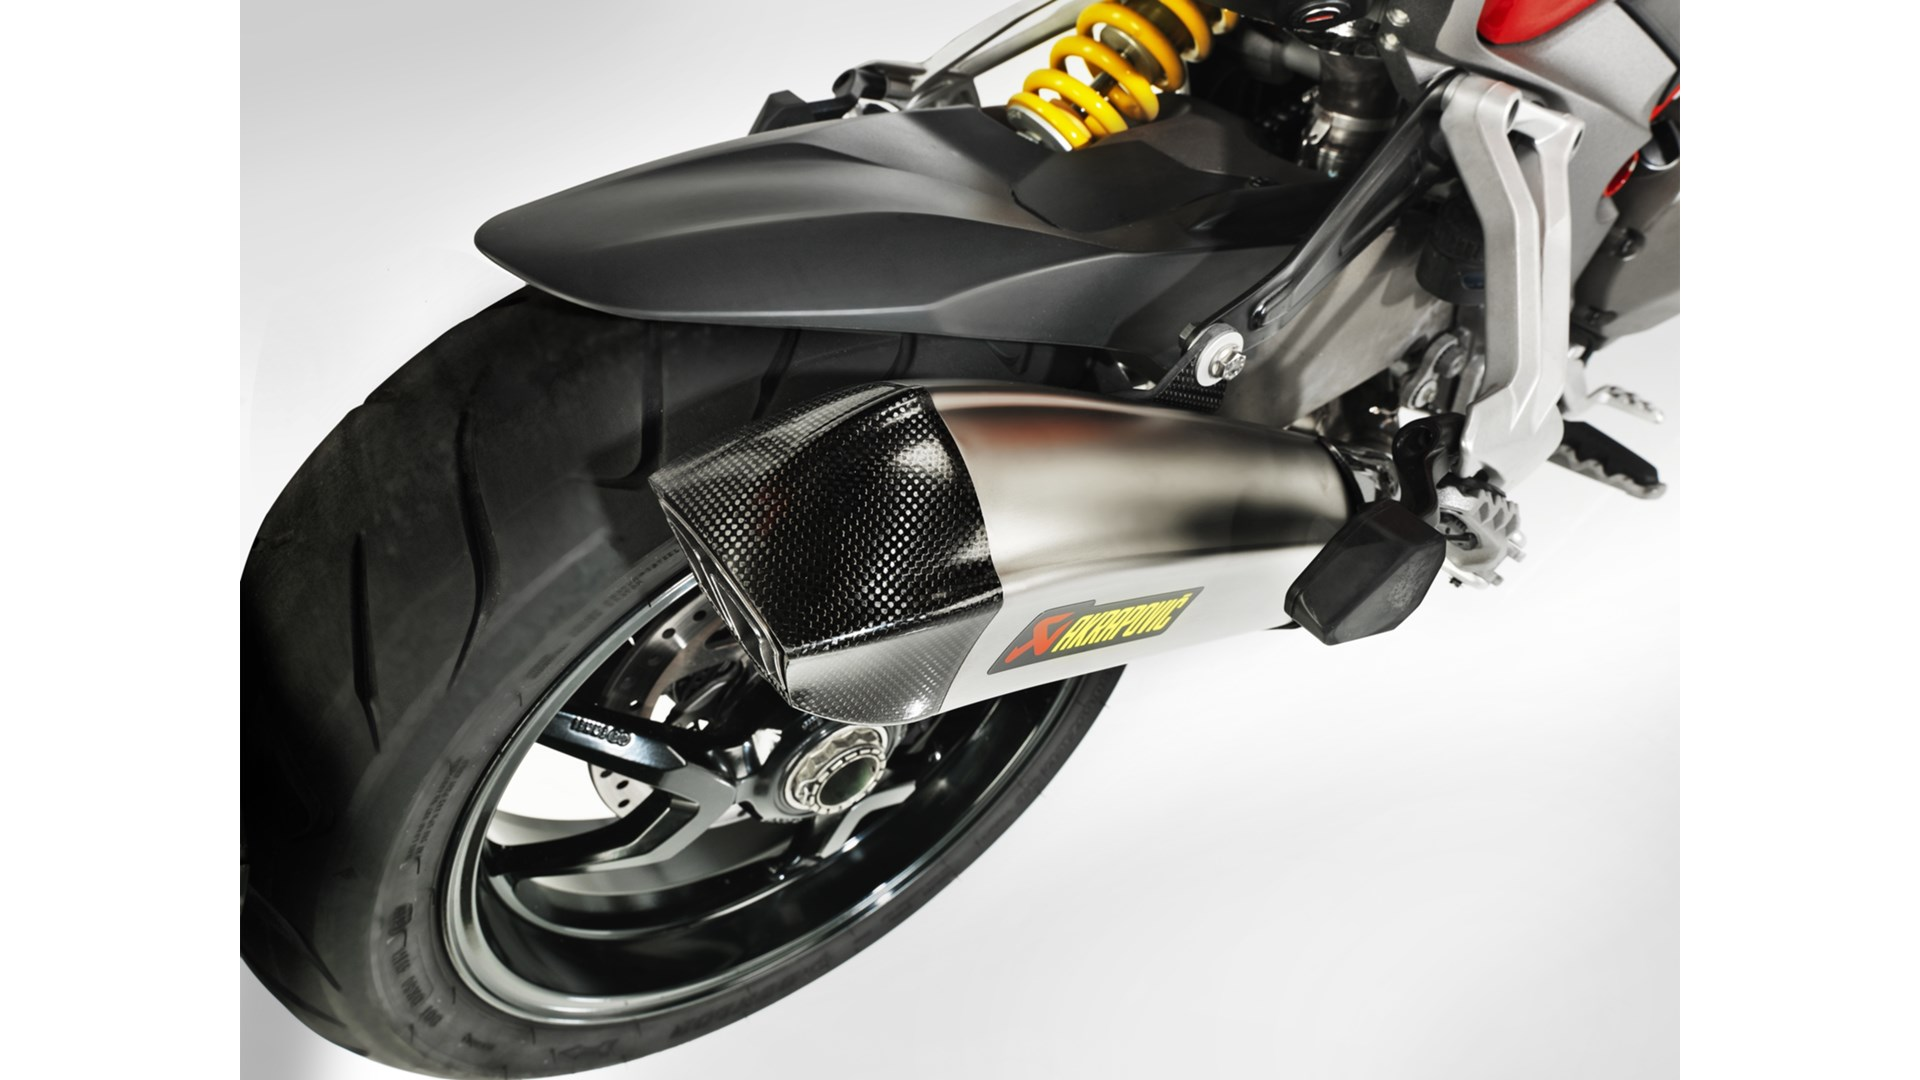 https://s1.cdn.autoevolution.com/images/news/gallery/akrapovic-revolutionary-exhaust-now-available-in-titanium-for-the-ducati-multistrada-1200_3.jpg